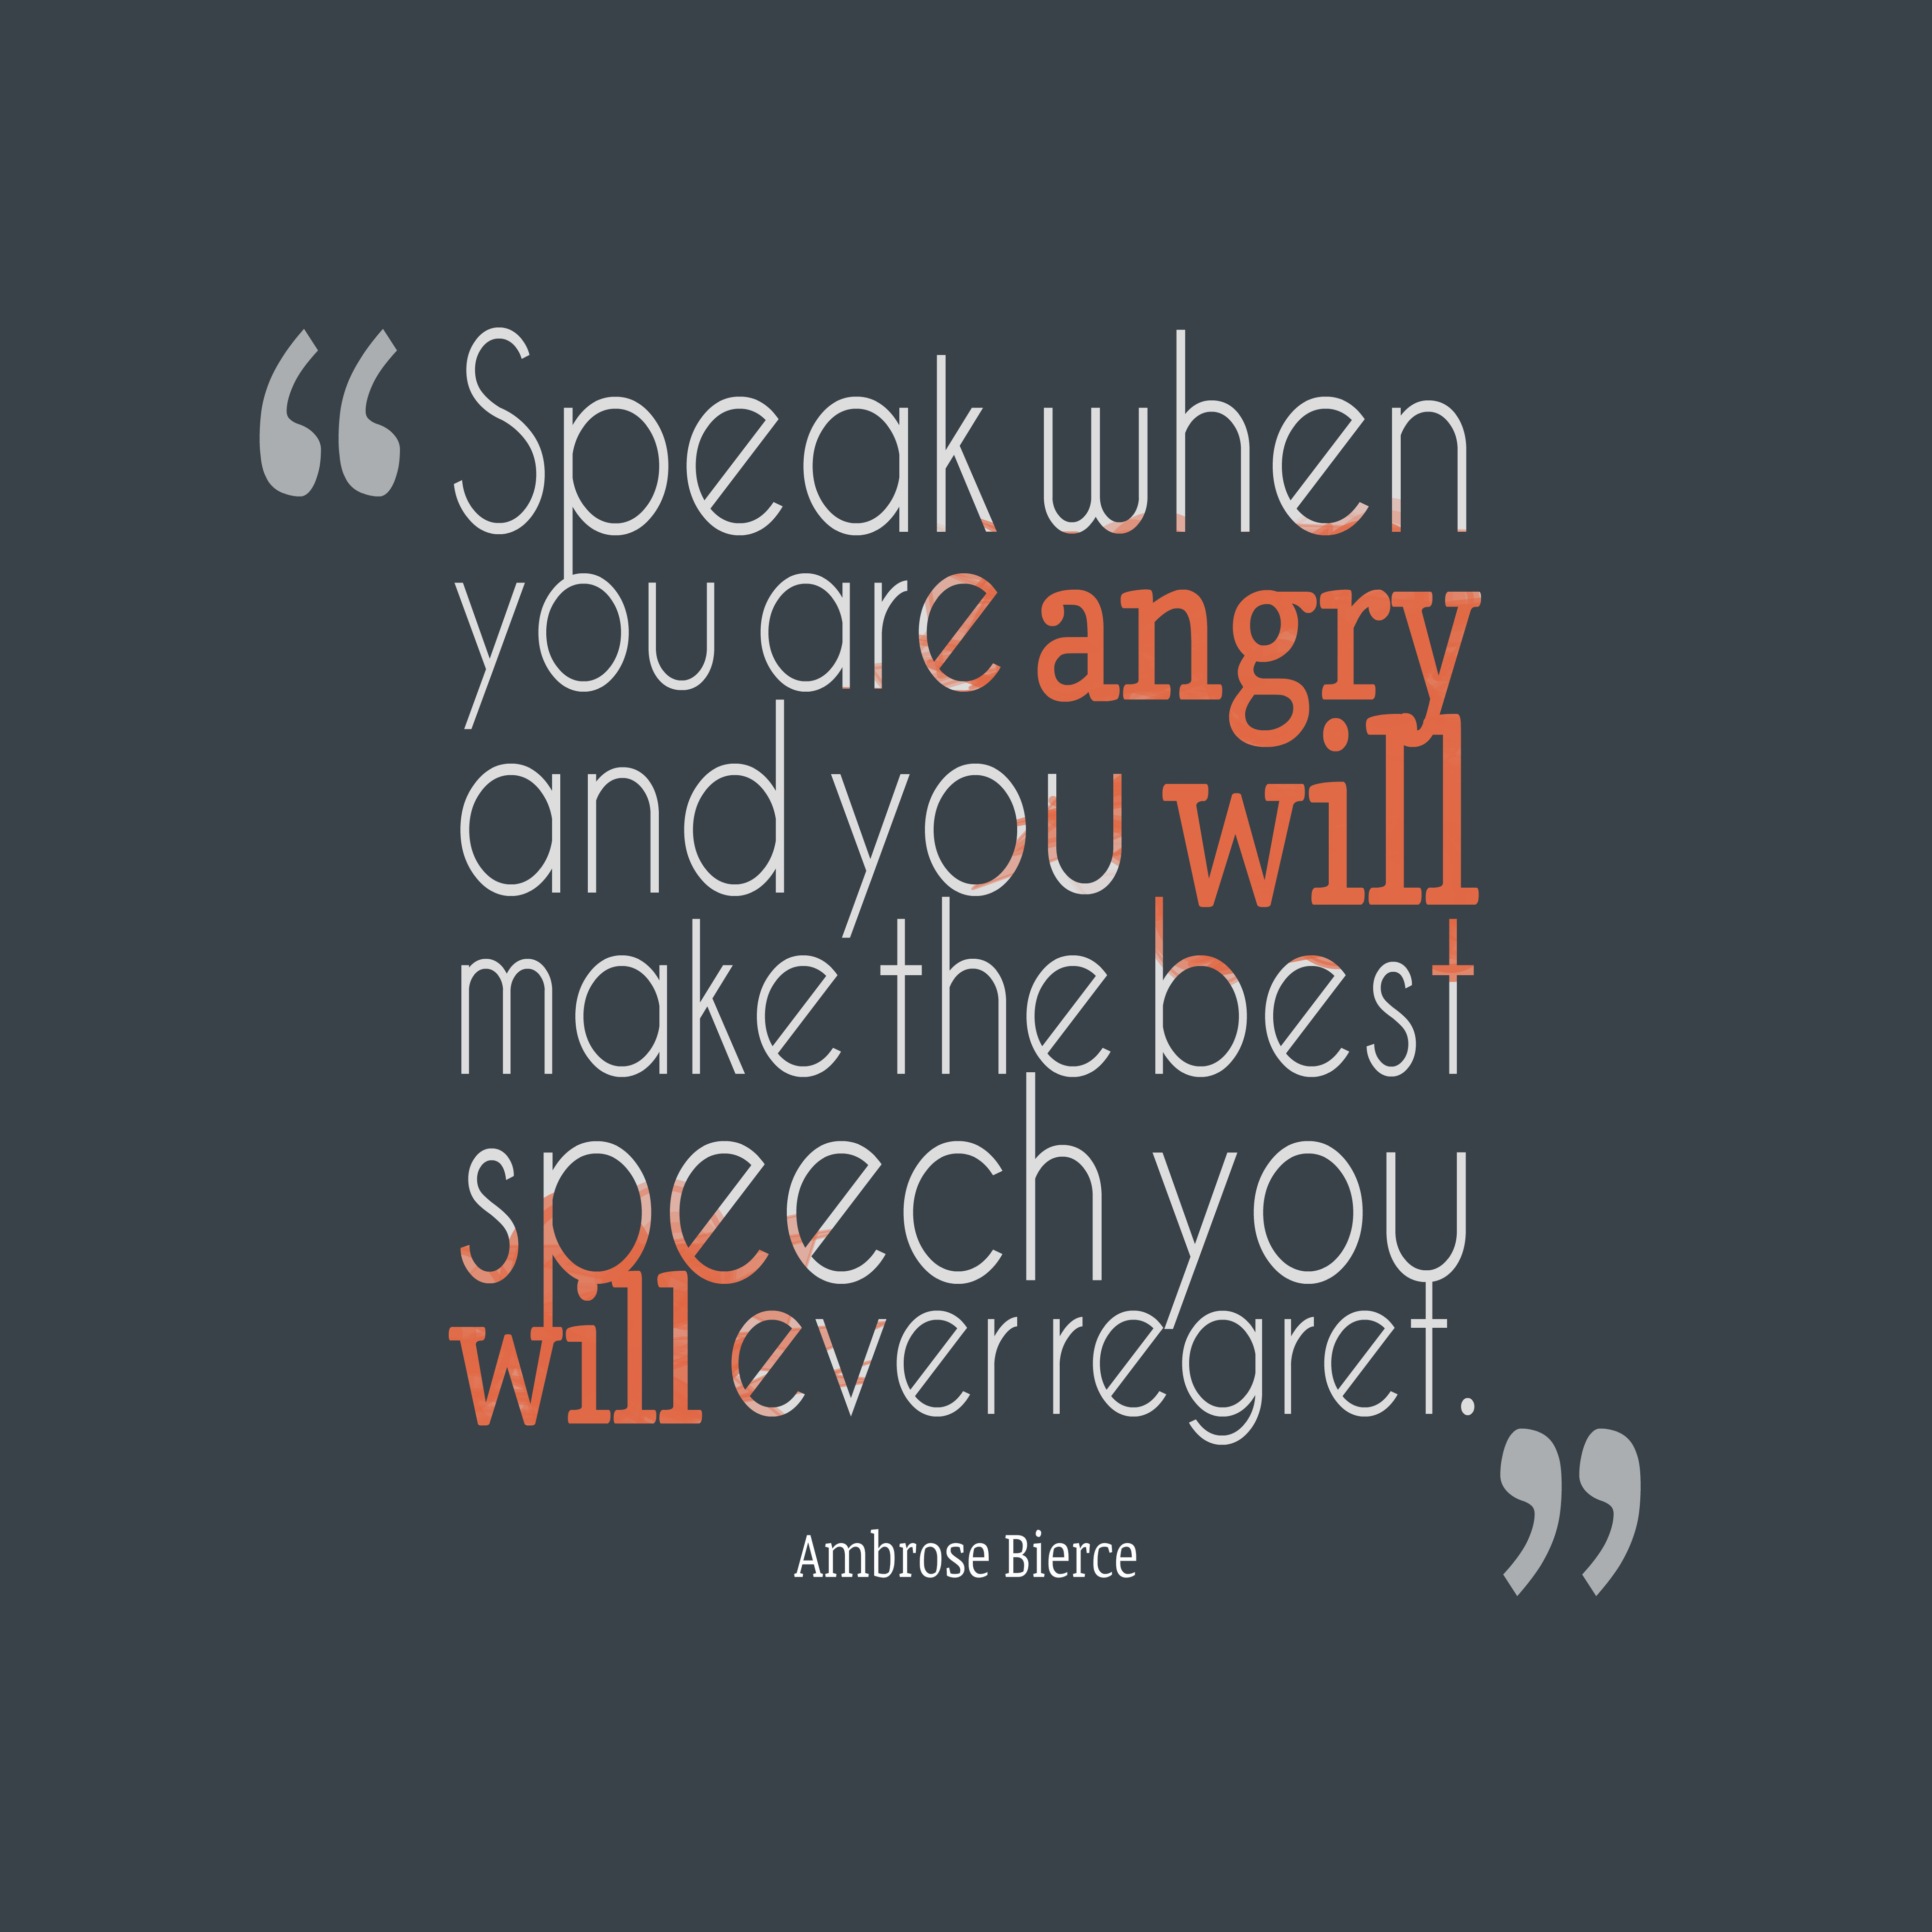 Quotes About Anger And Rage: Angry Quotes About Life Anger Quotes Sayings, Pictures And